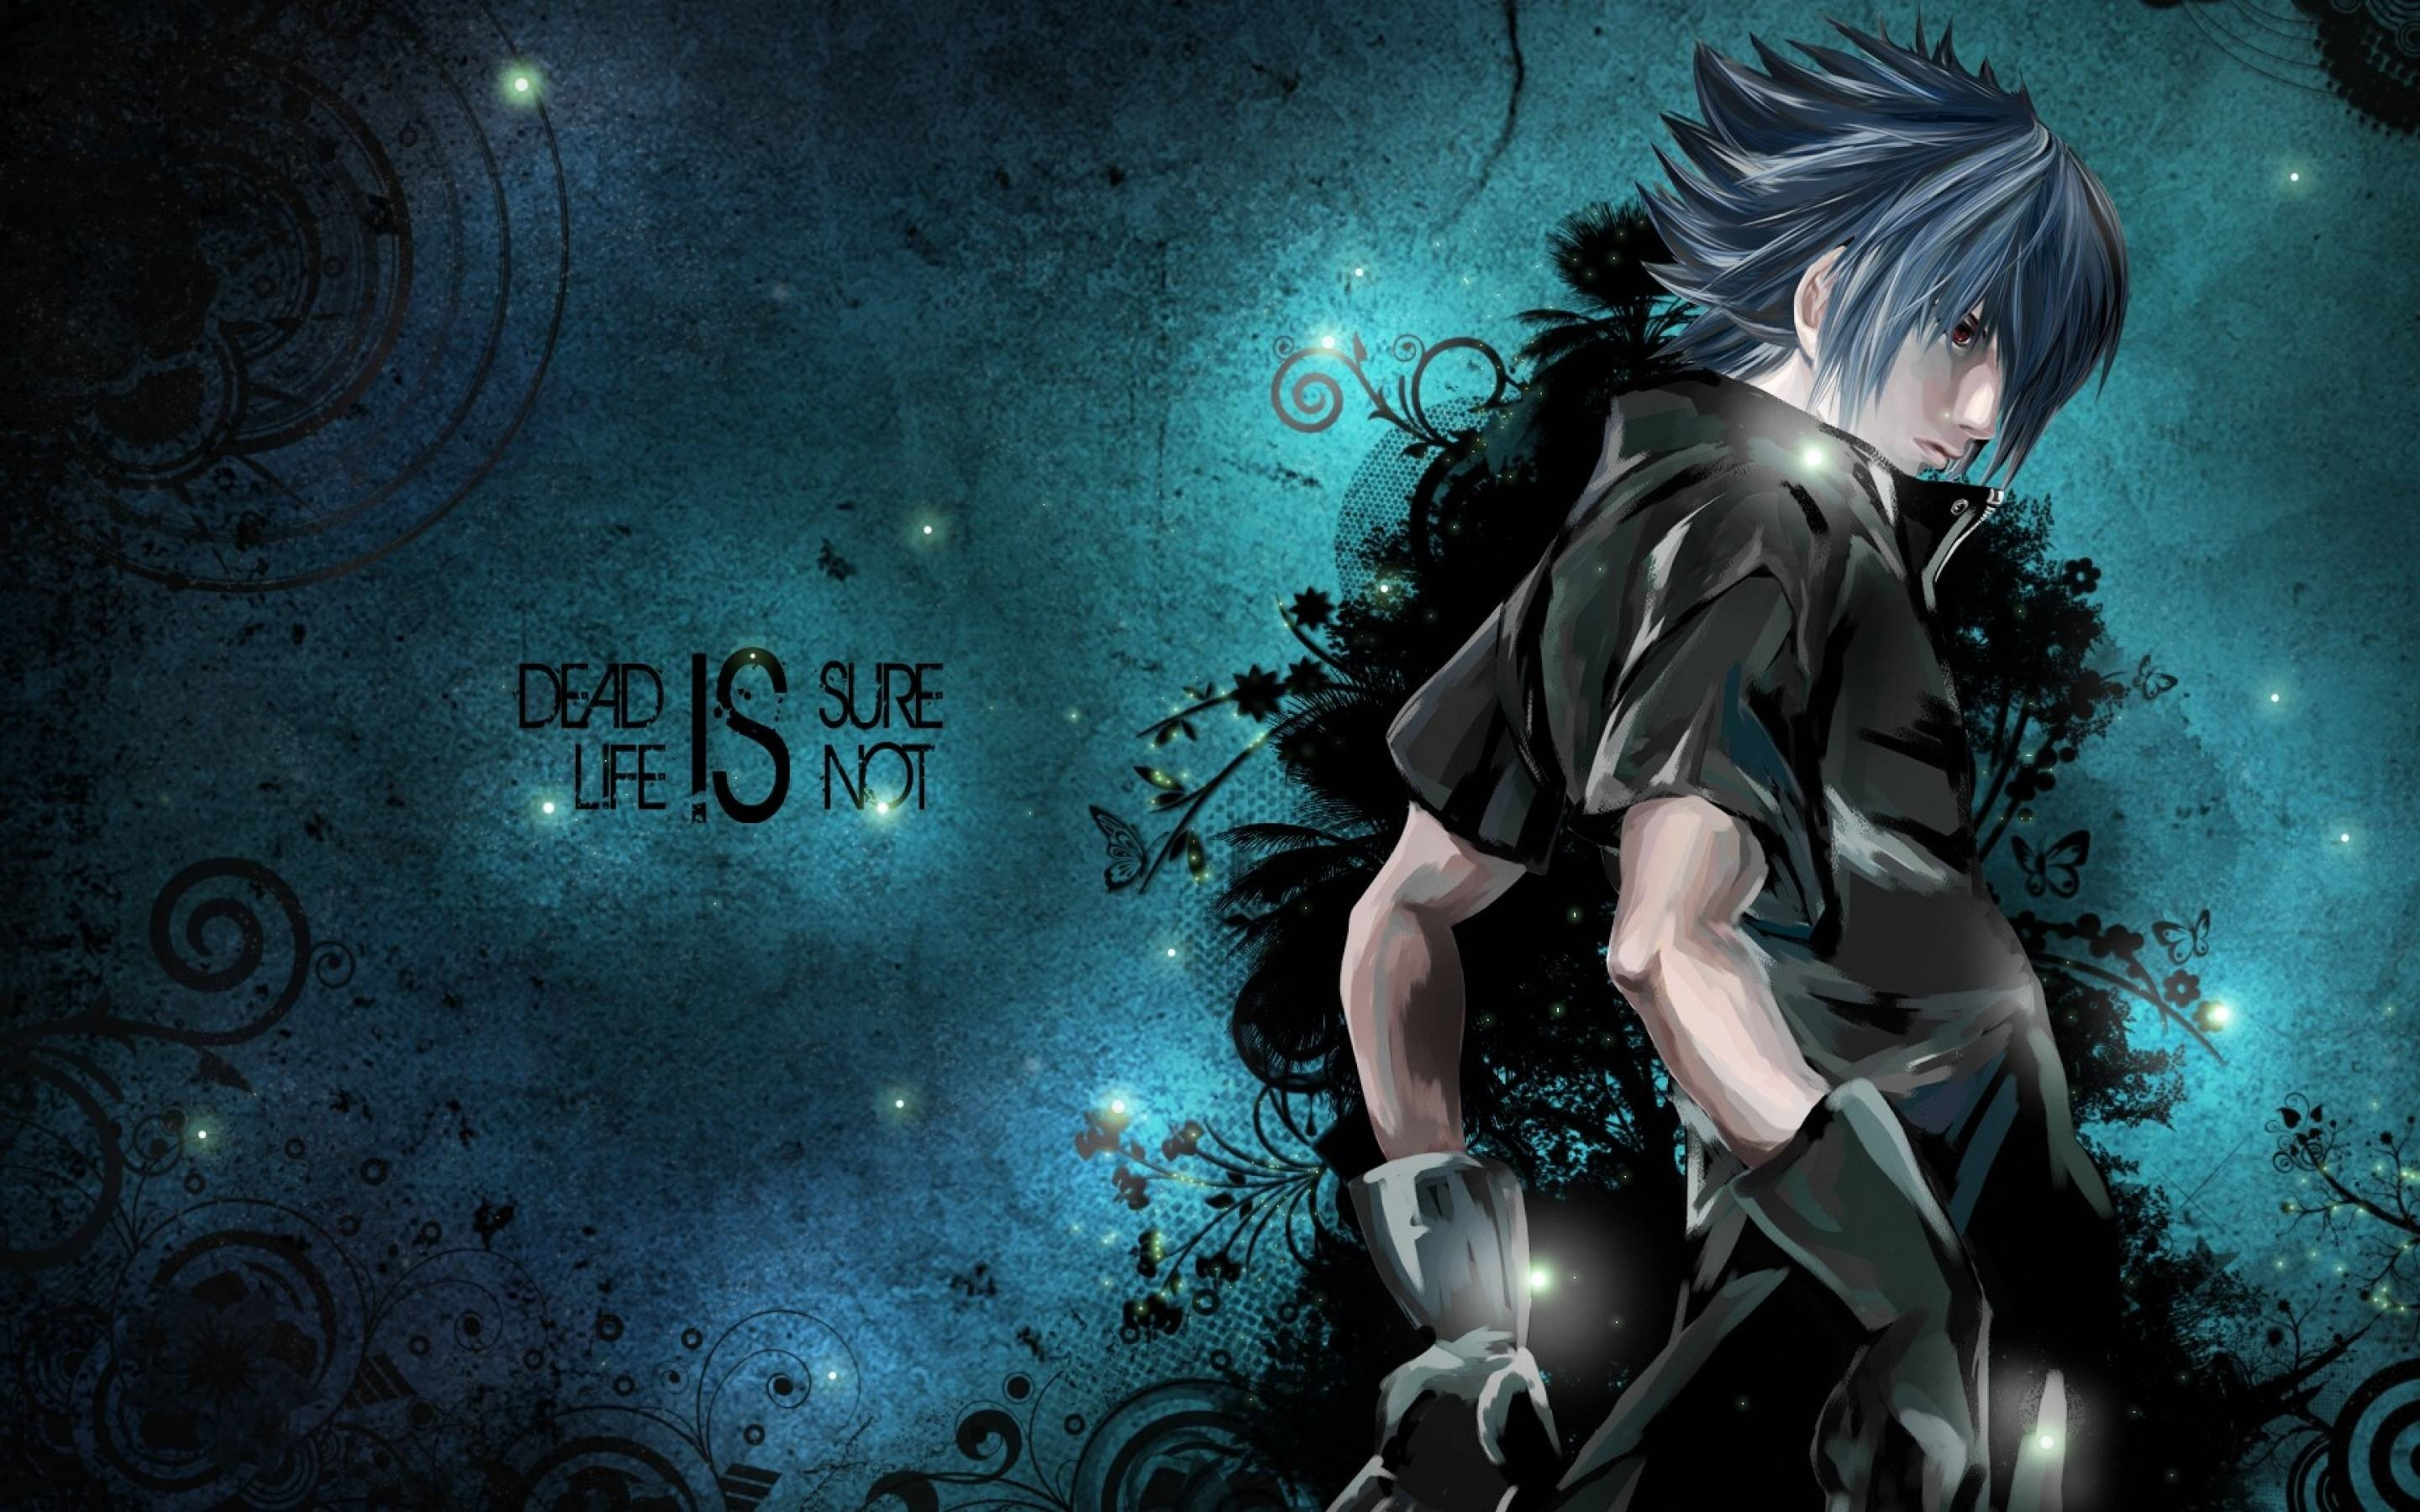 Res: 2880x1800, Awesome Anime Desktop Wallpaper Widescreen Gallery - anime phone desktop  wallpaper hd images amazing background images